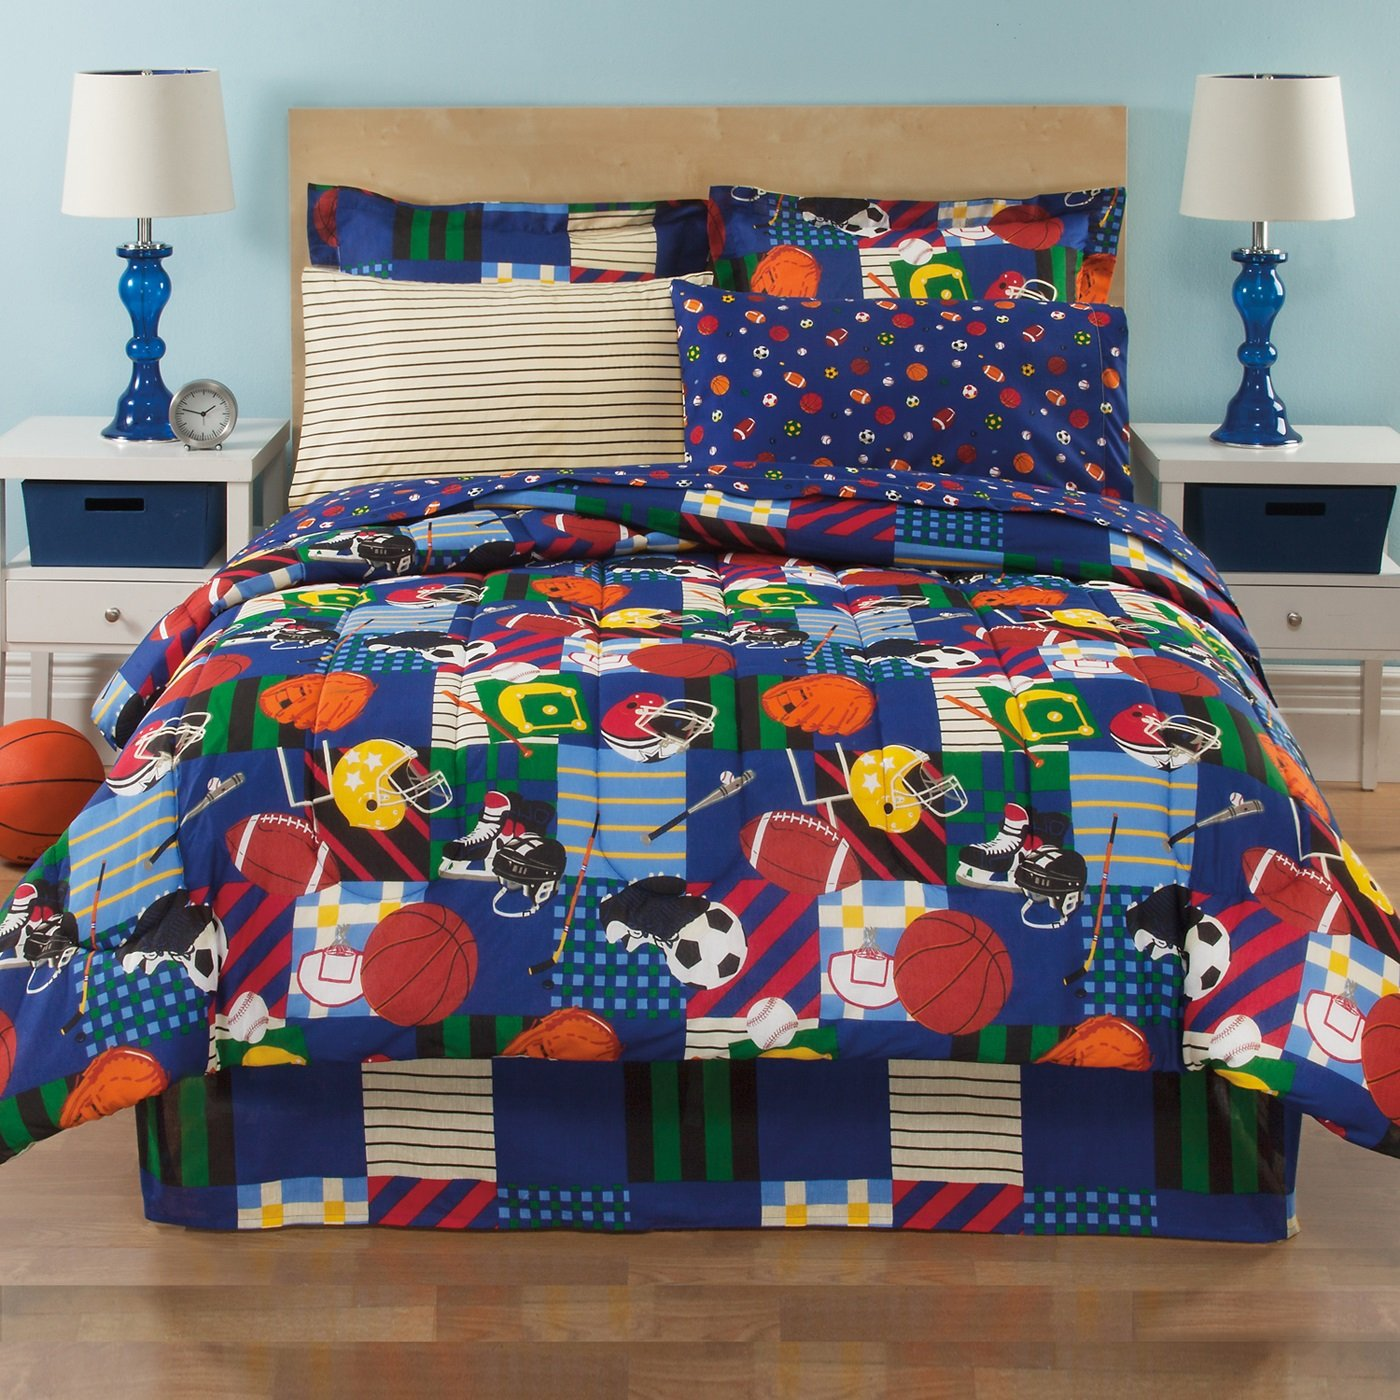 8 Piece Boys Full Sports Comforter Set Wtih Sheet Set, Reversible Bedding Squares, All Star Baseball Football Soccer Basketball All Over Pattern, Children Mix Sports Themed Pattern, Multicolored